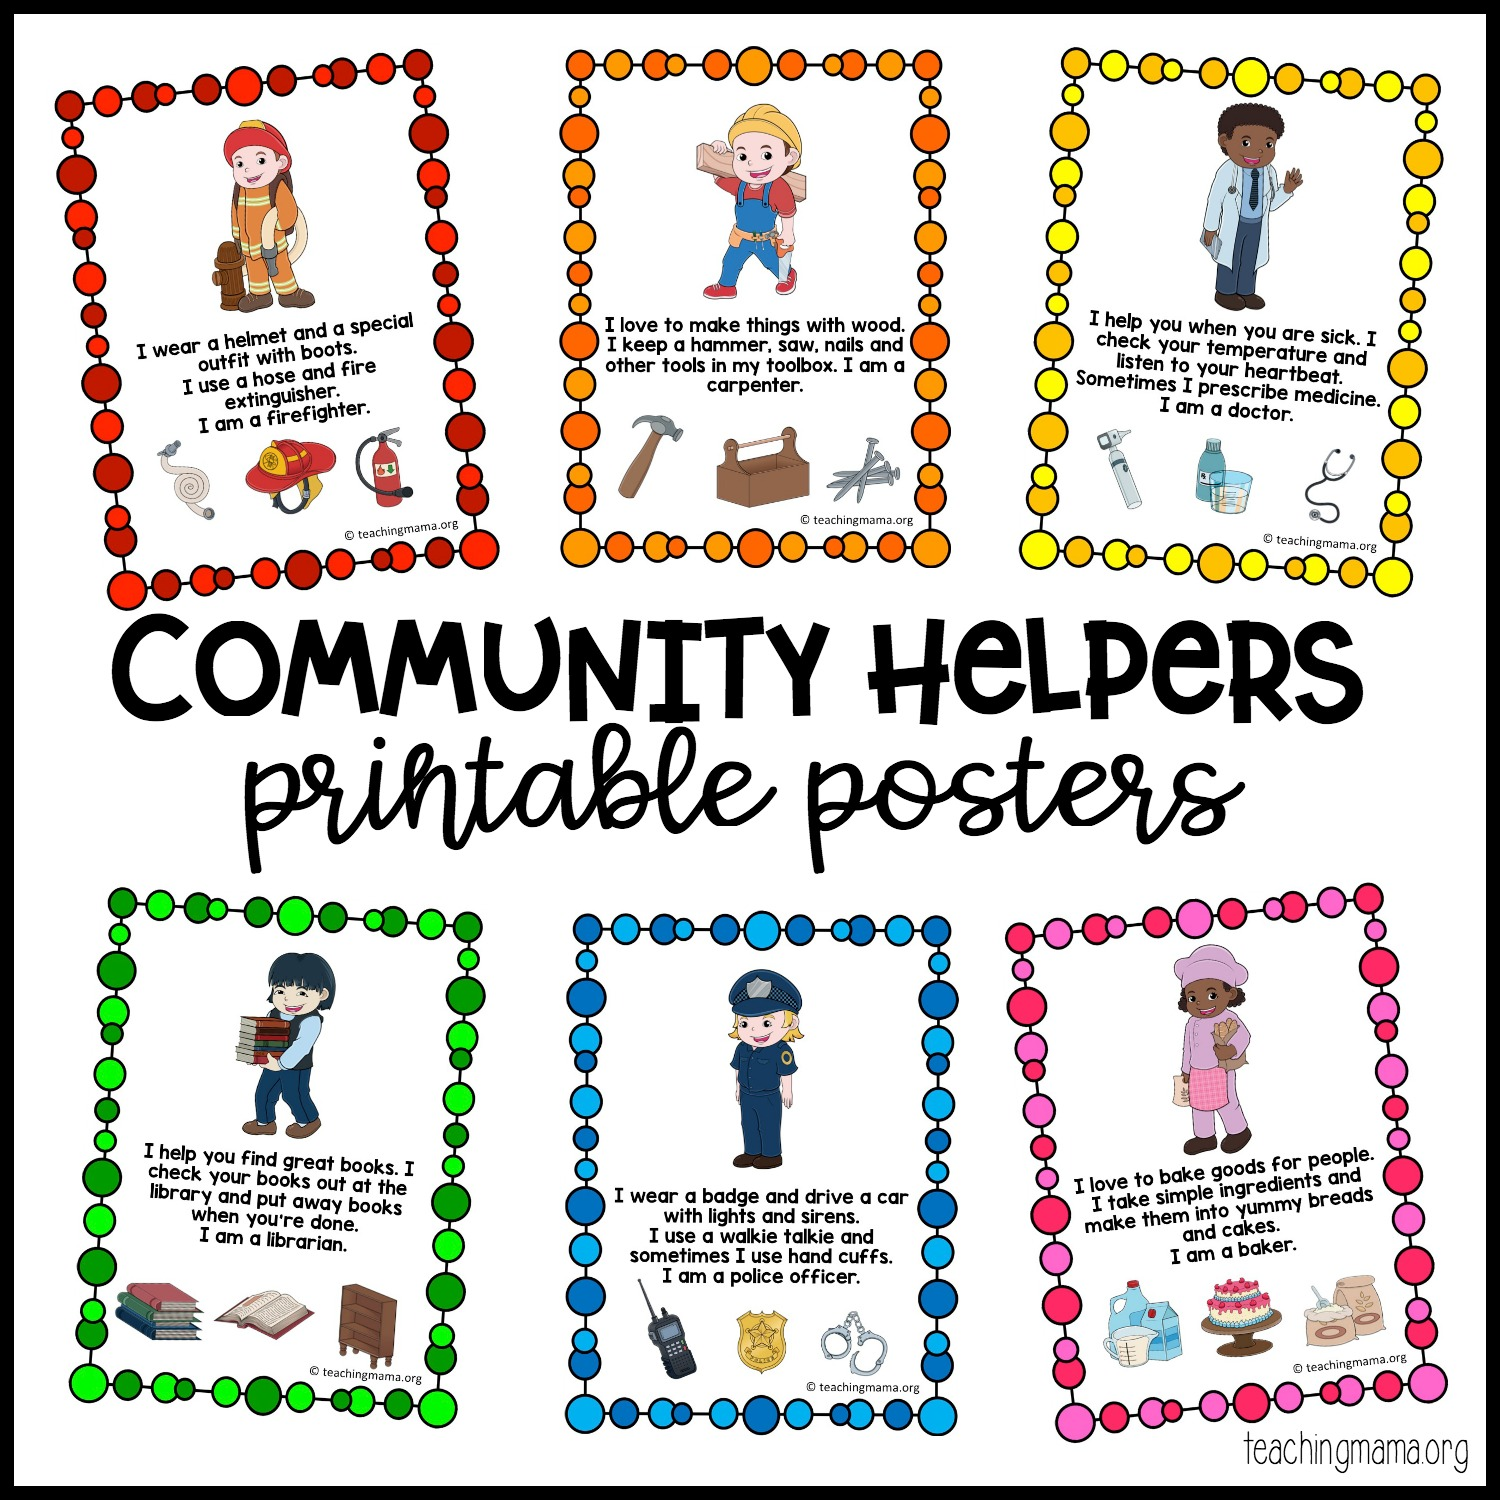 graphic about Printable Posters called Regional Helpers Printable Posters - Coaching Mama